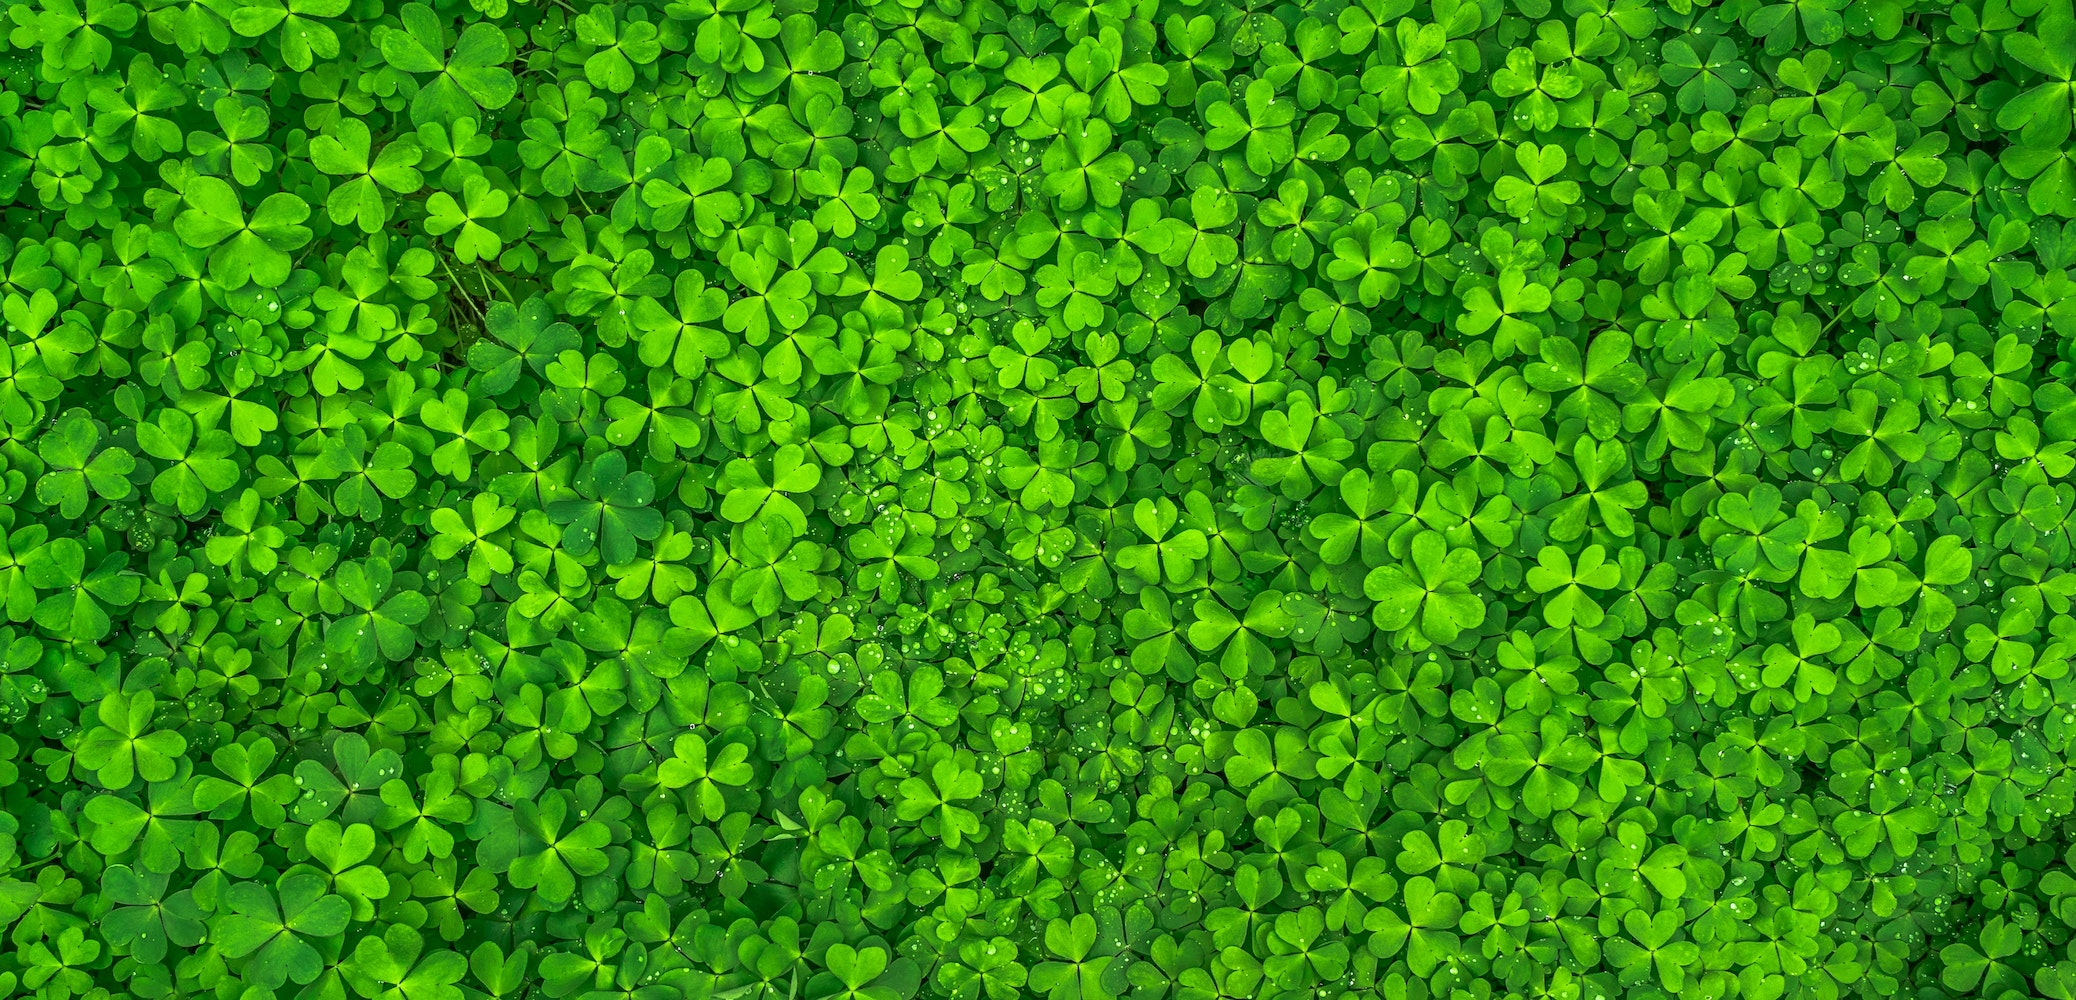 free stock photos of clover pexels